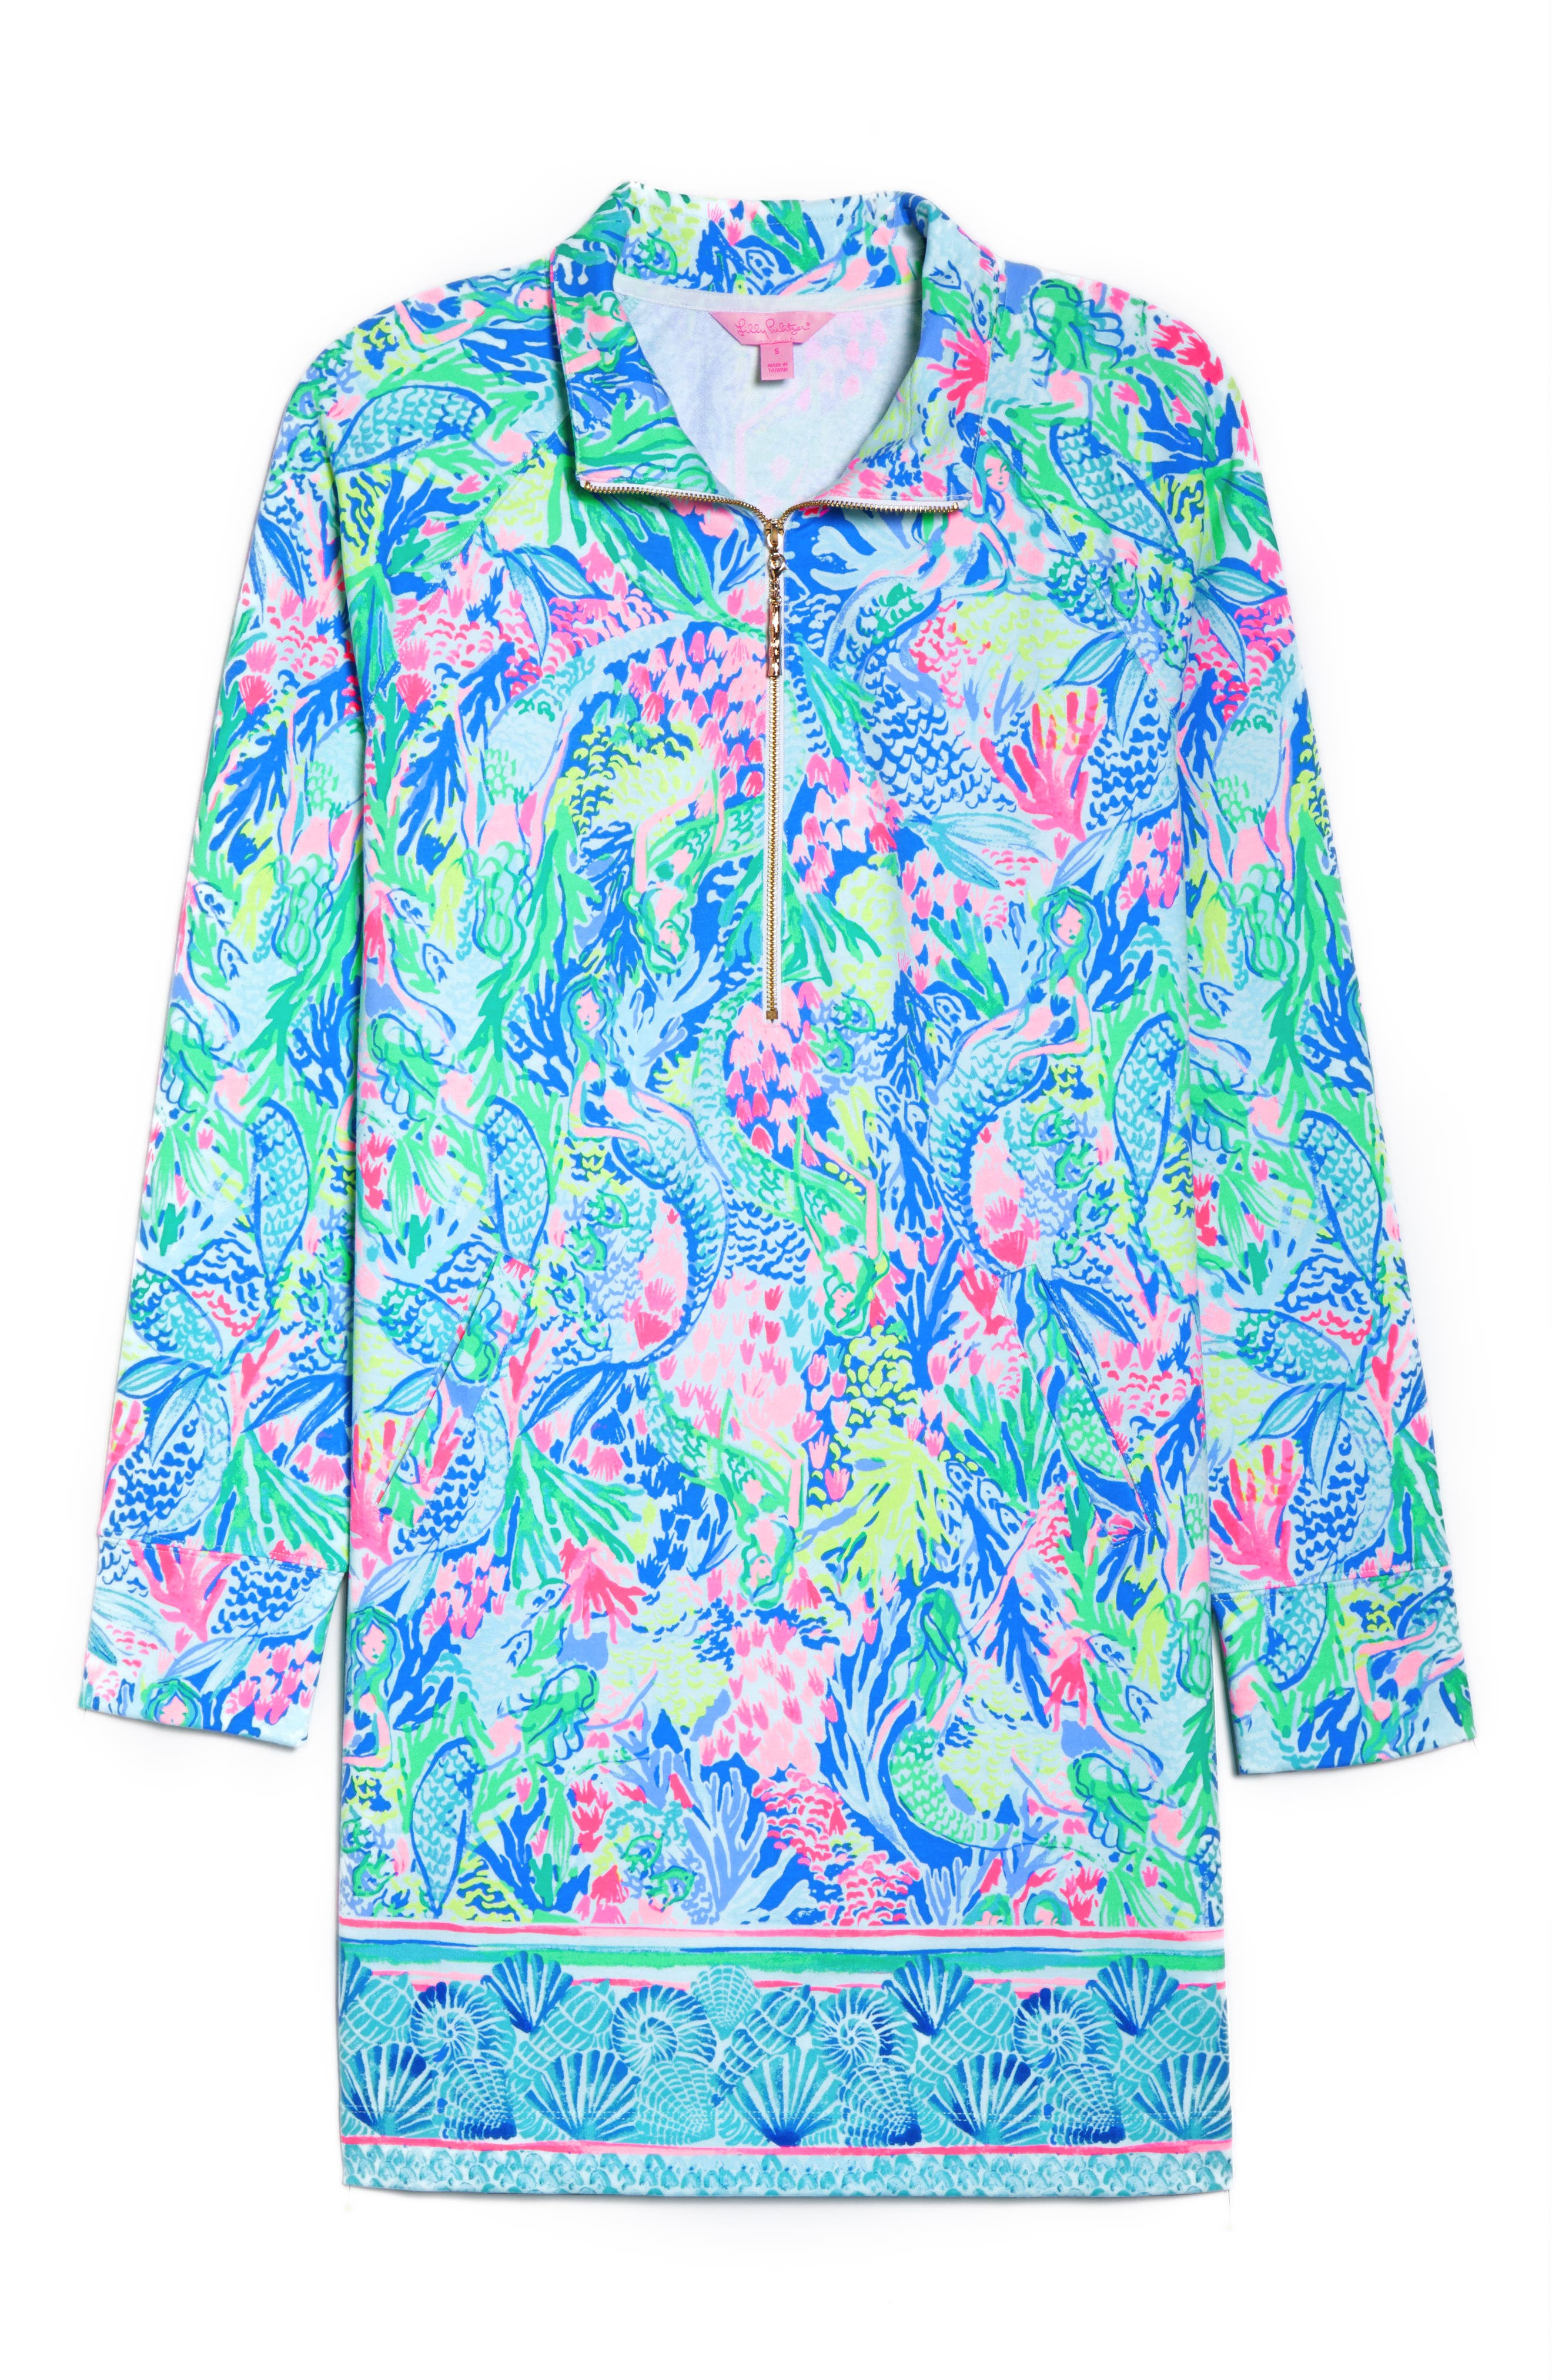 LILLY PULITZER<SUP>®</SUP>,                             Lilly Pulitzer Skipper Shift Dress,                             Alternate thumbnail 7, color,                             449